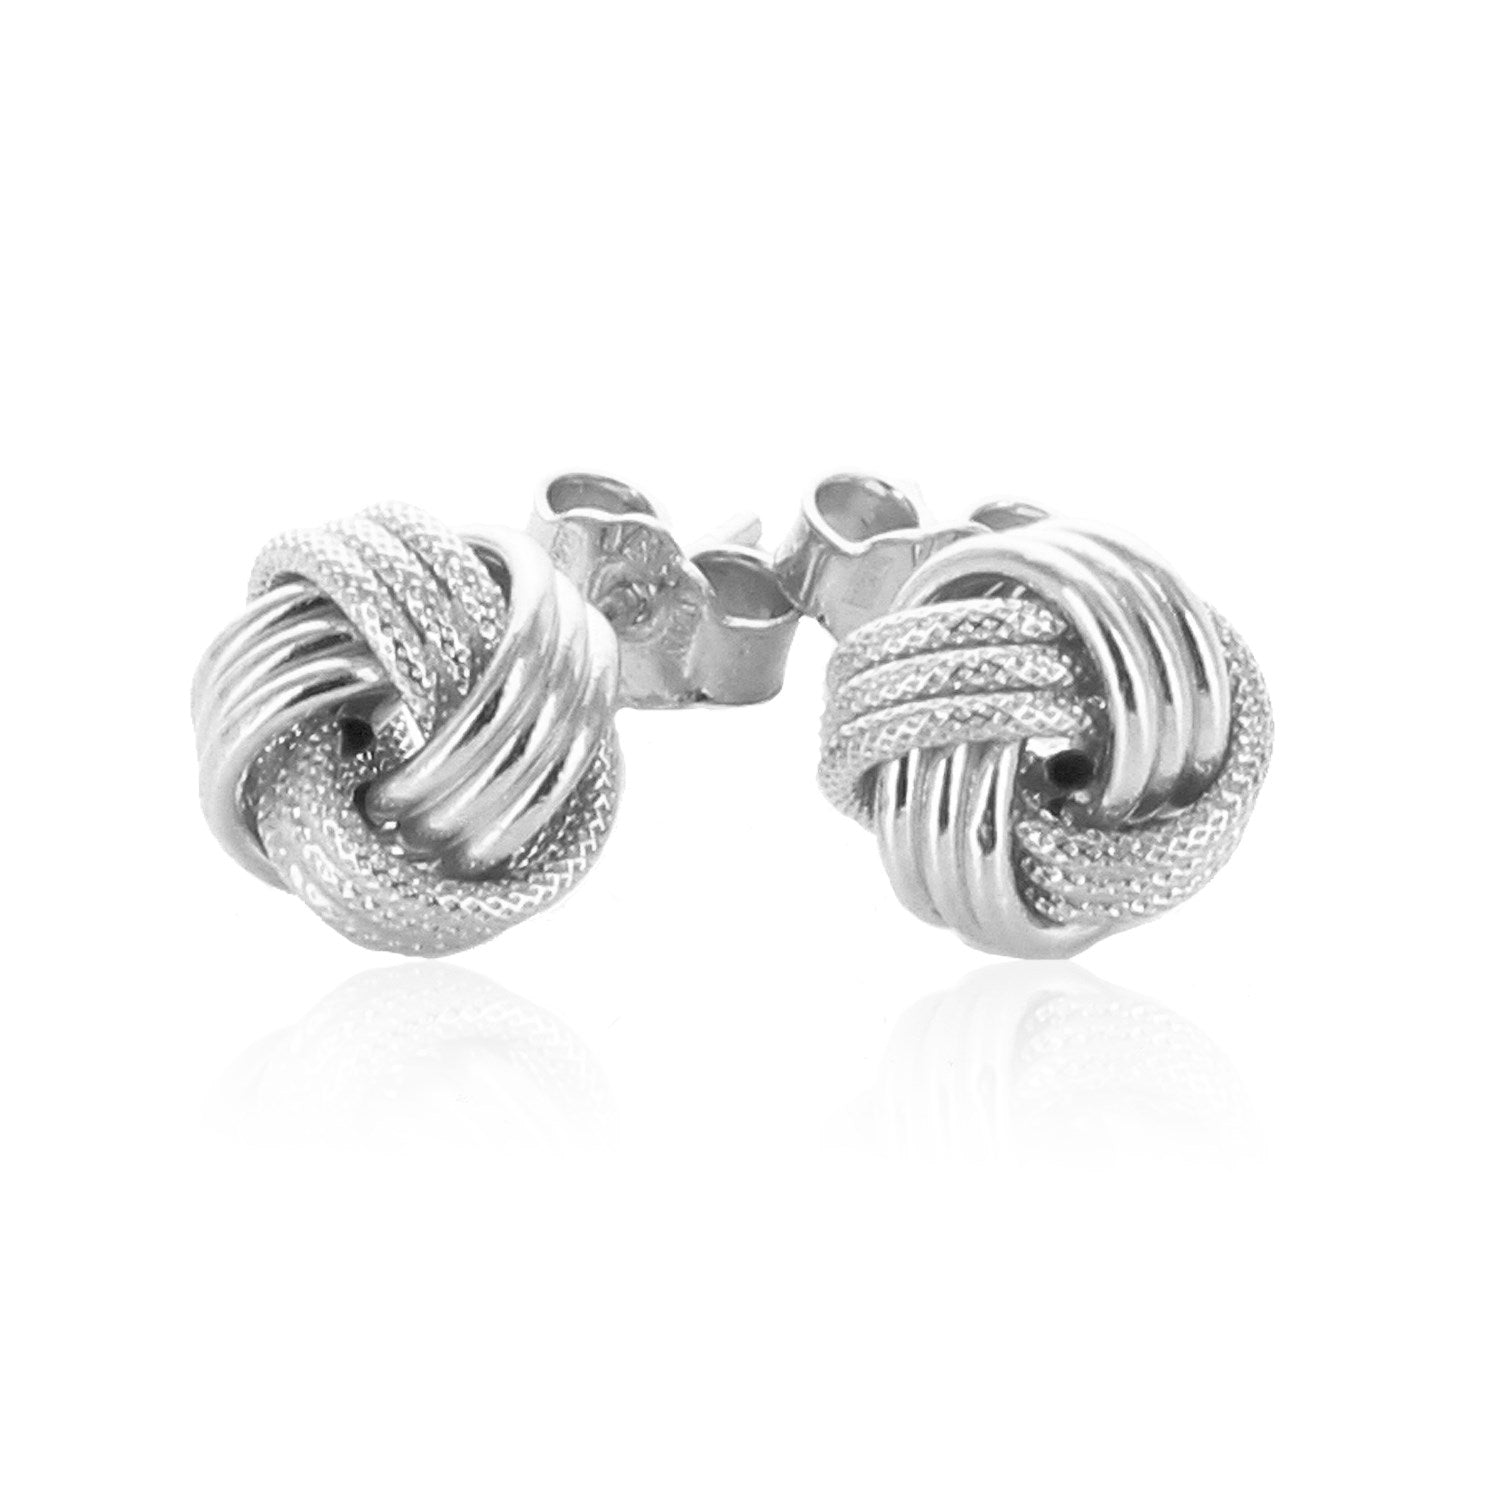 bed6d9d11 14k White Gold Love Knot with Ridge Texture Earrings - Unity BAMN